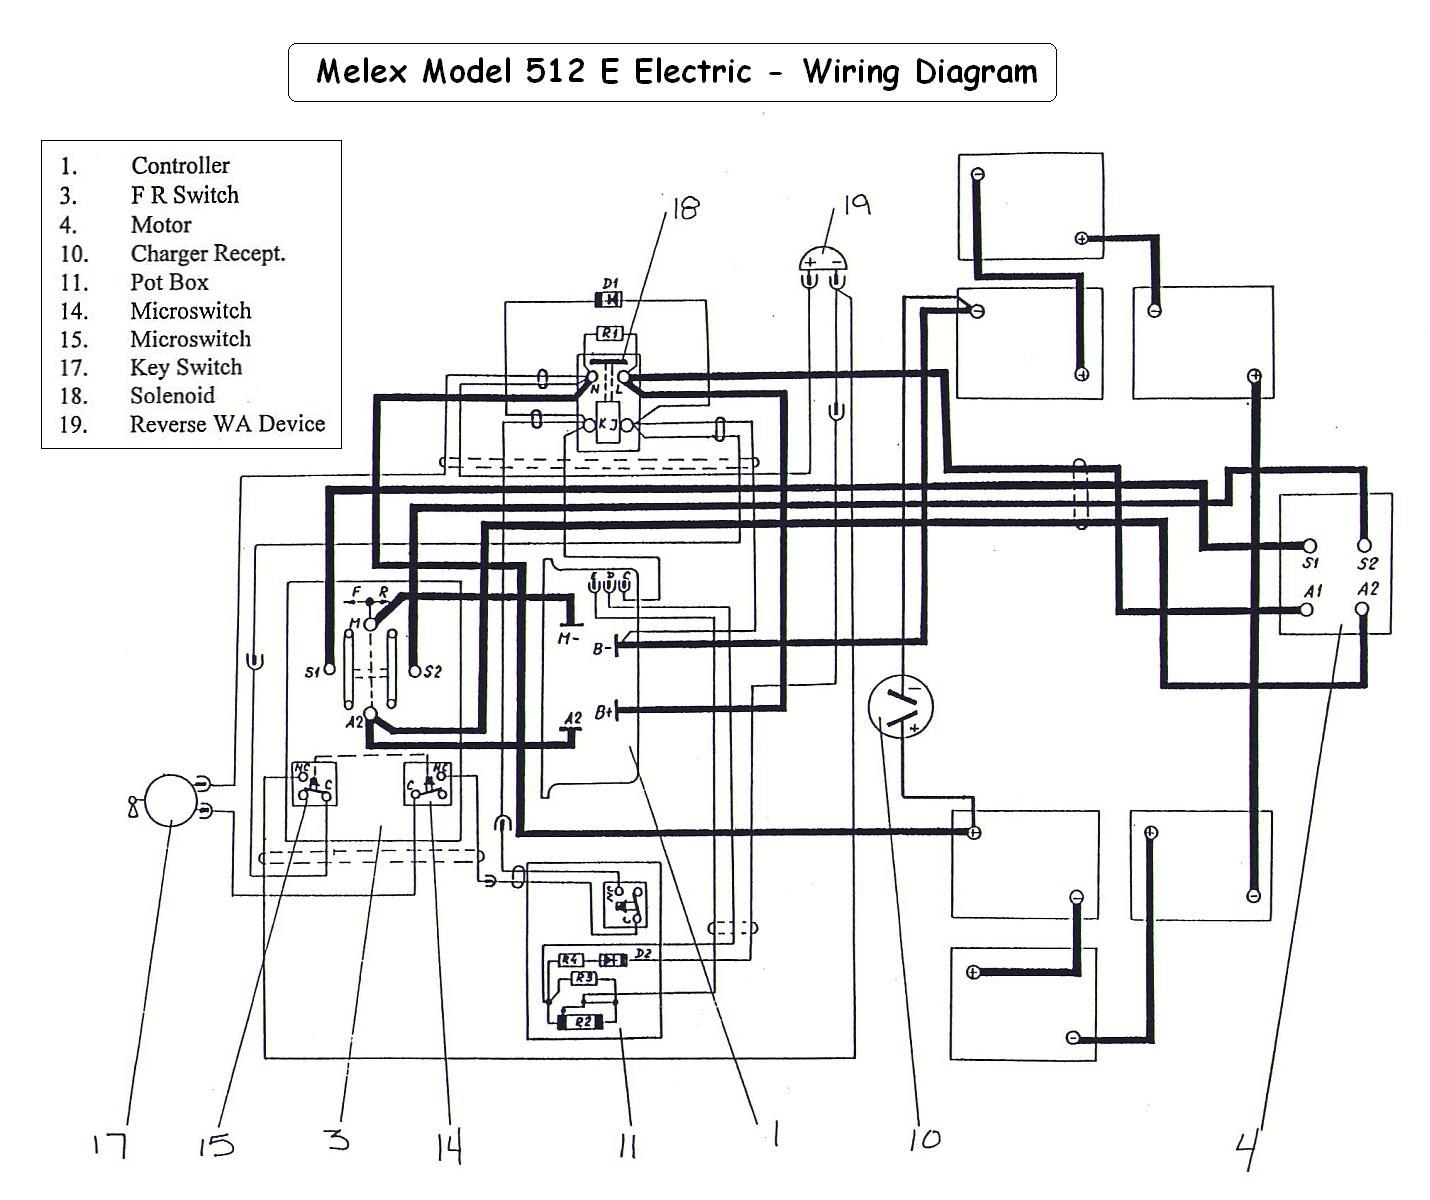 36 Volt Taylor Dunn Wiring Diagram on 1986 Honda Trx 250 Wiring Diagram